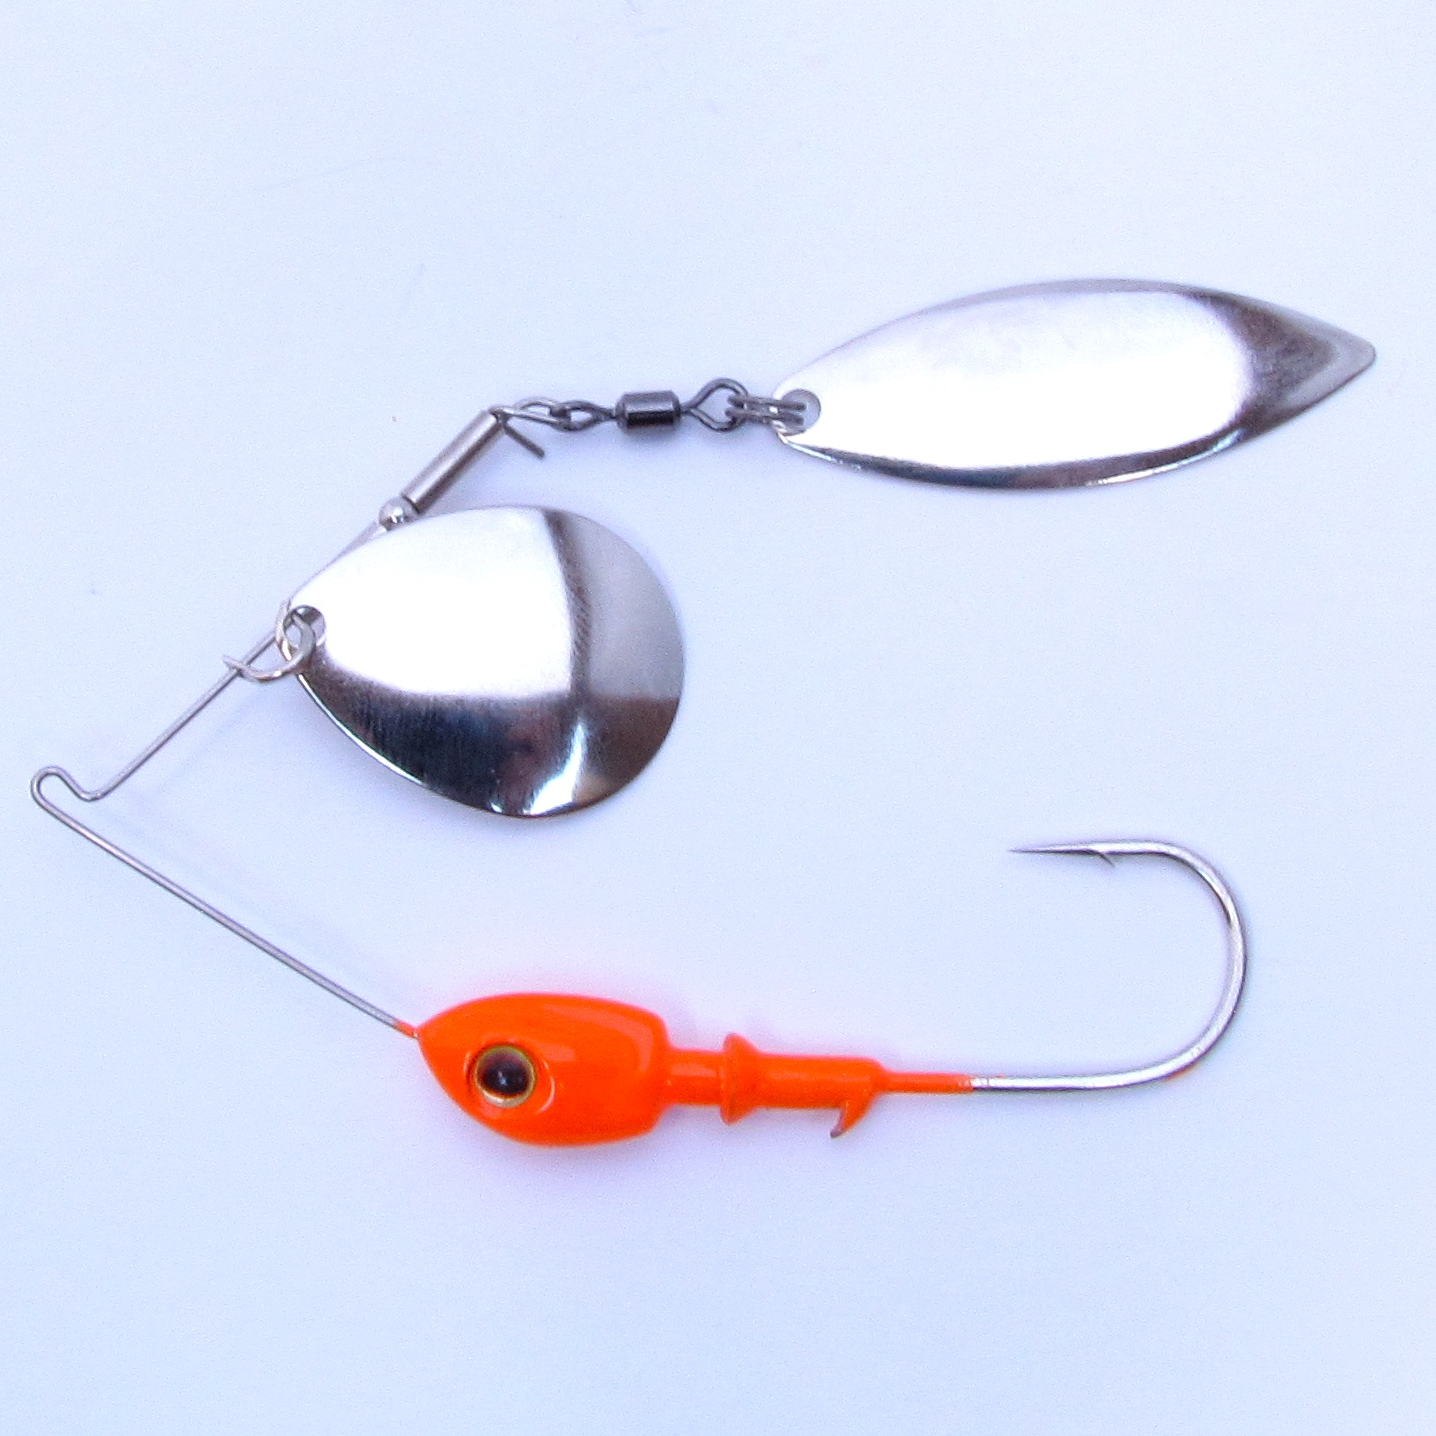 Design Your Own Spinnerbait | Custom Fishing Lures | Frugal Lures